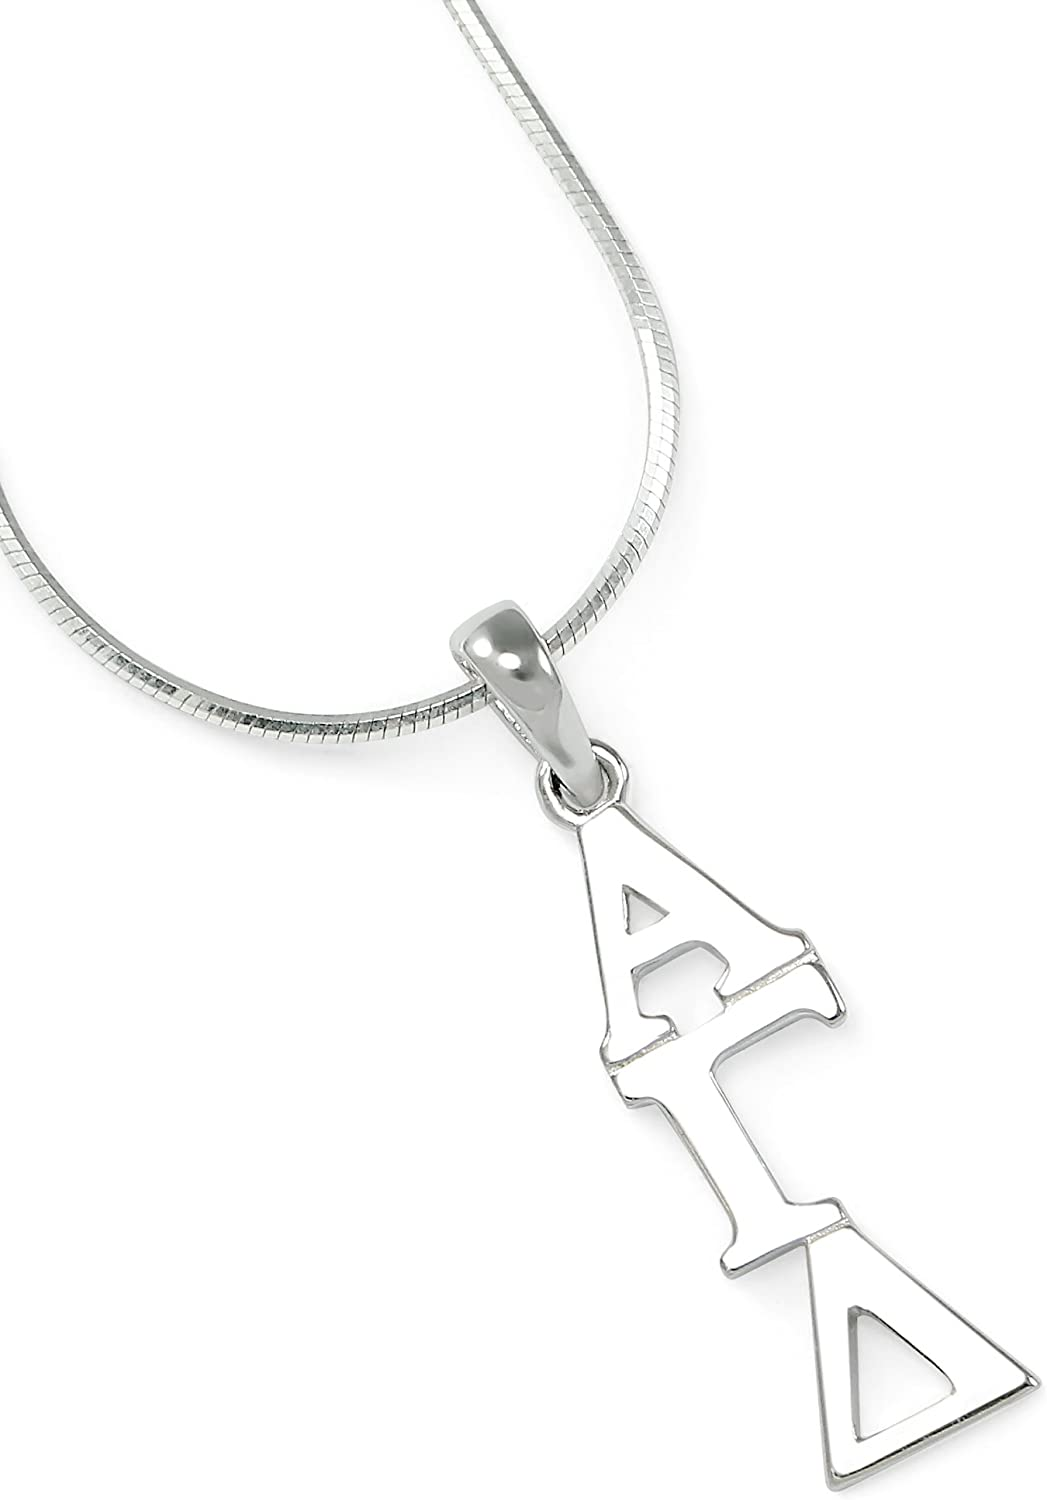 The Collegiate Standard Alpha Gamma Silv Cheap mail order shopping Sterling Delta Free Shipping Cheap Bargain Gift Sorority